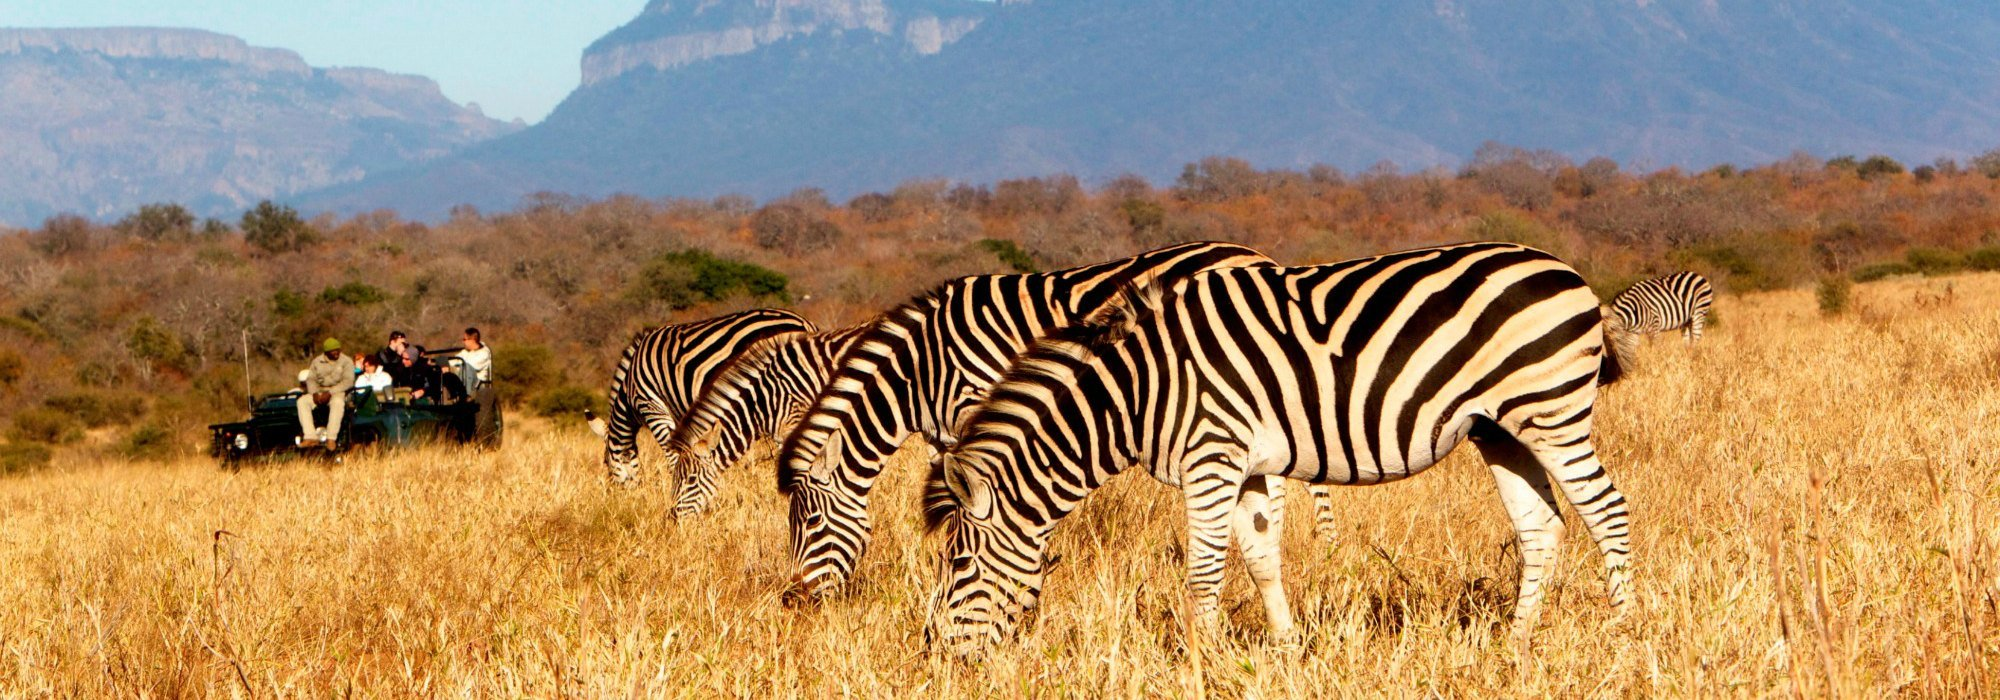 Zebras on safari at Kapama Game Reserve